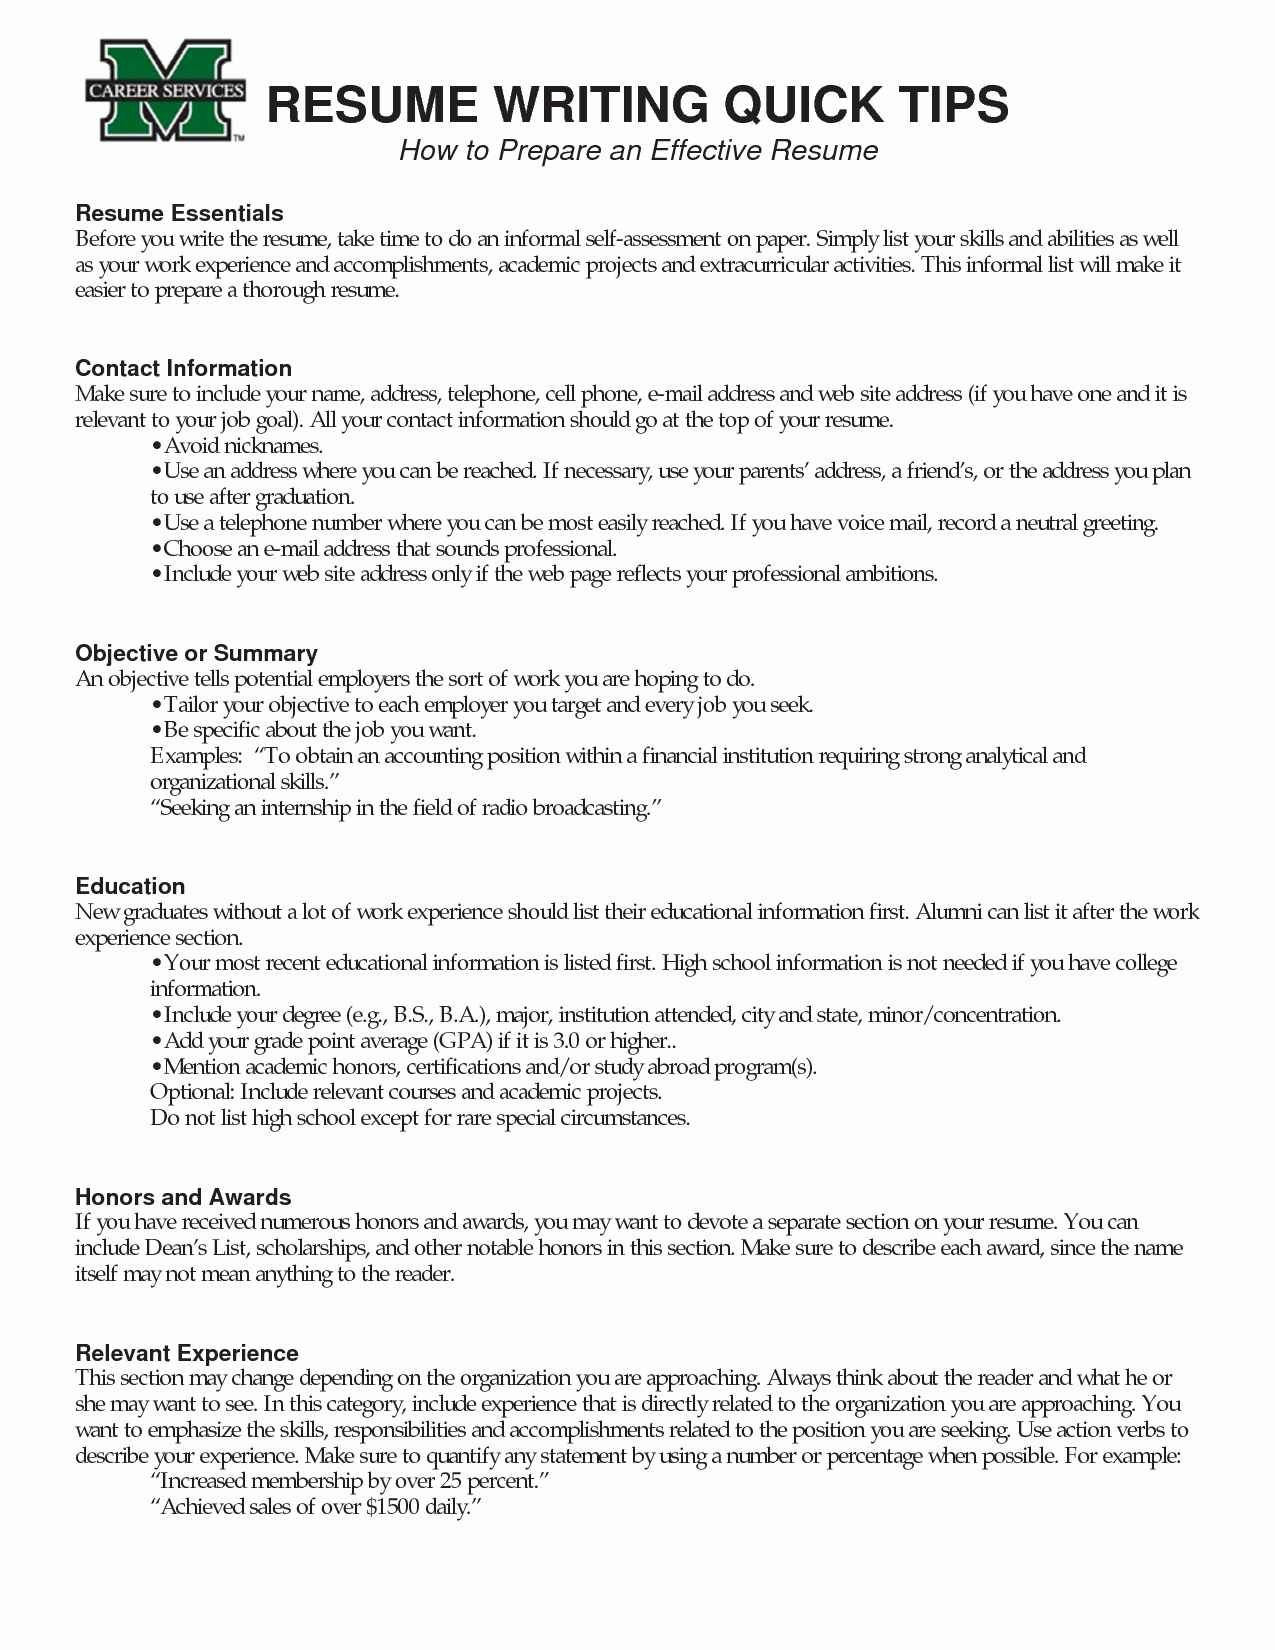 Resume Magic Trade Secrets Of A Professional Resume Writer Pdf - 21 Resume Magic Trade Secrets A Professional Resume Writer Pdf